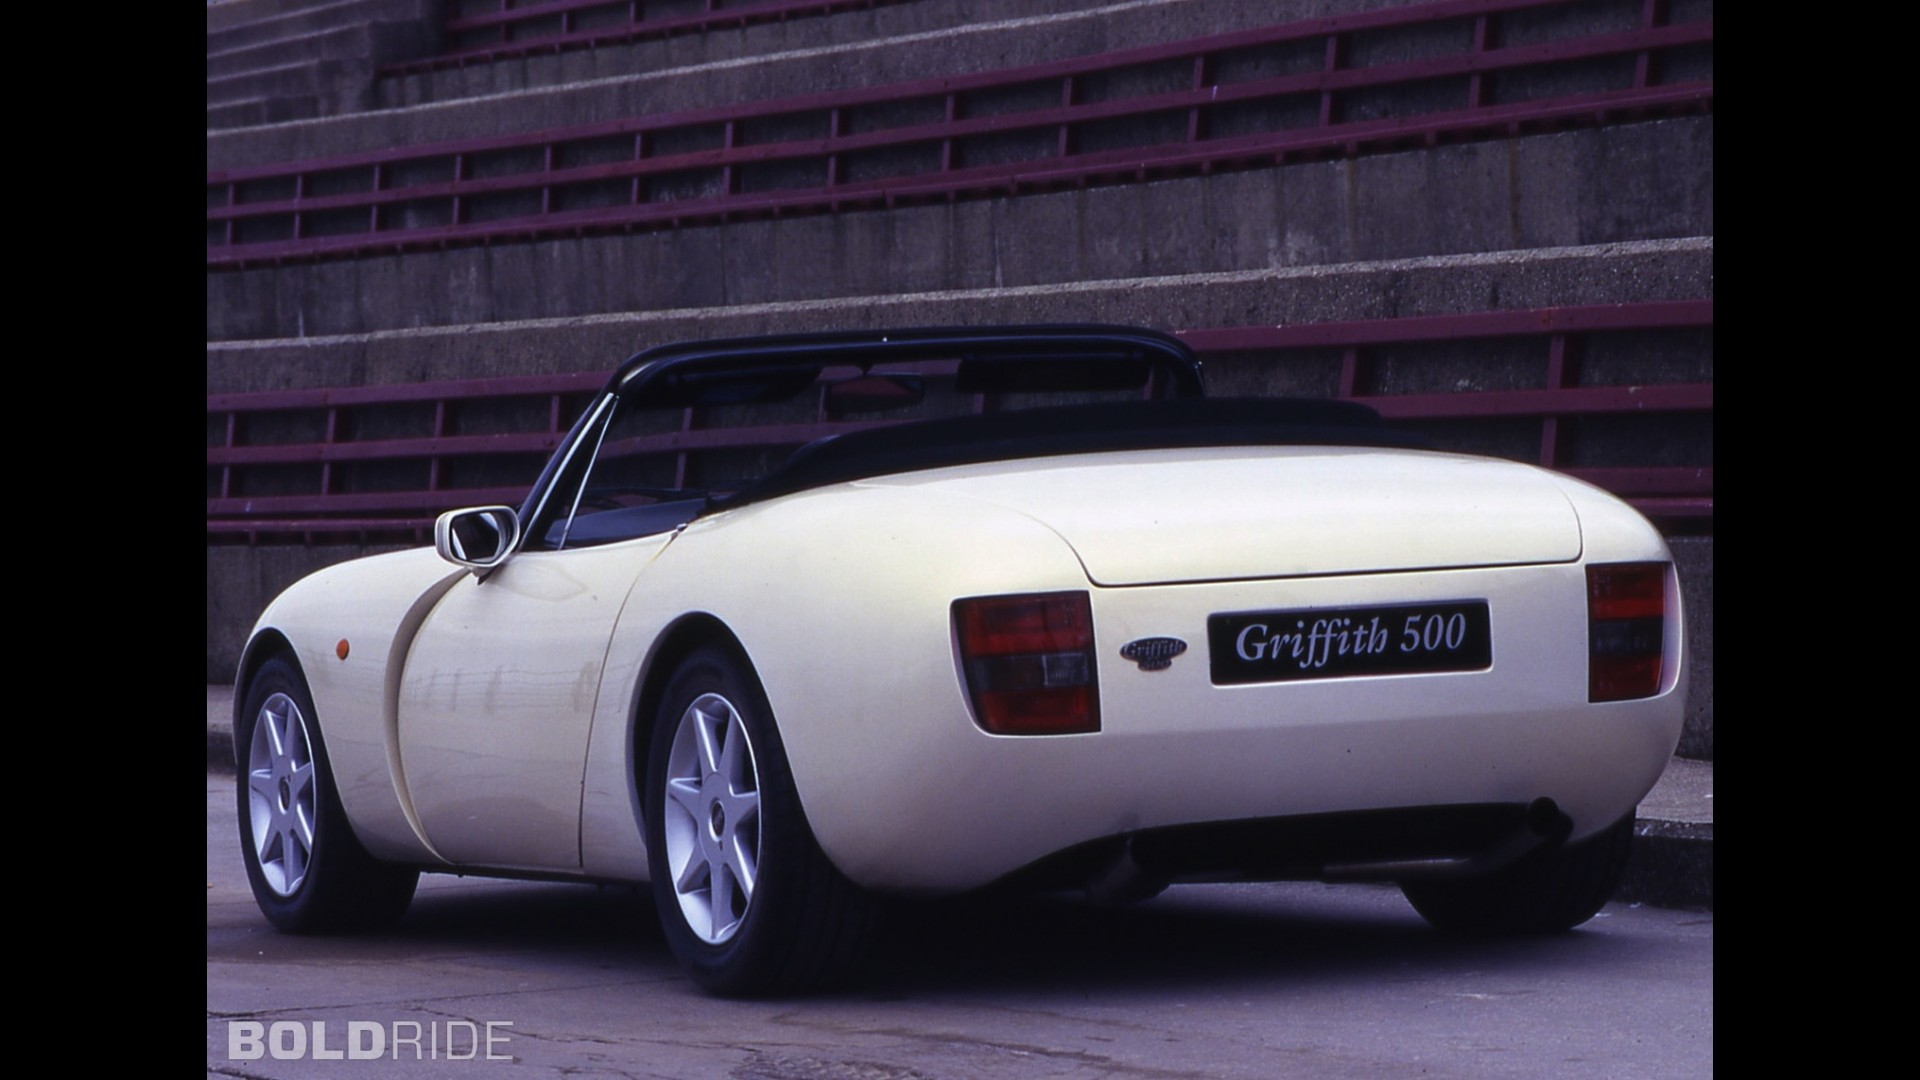 tvr-griffith-500 Stunning Tvr Griffith 500 Buying Guide Cars Trend